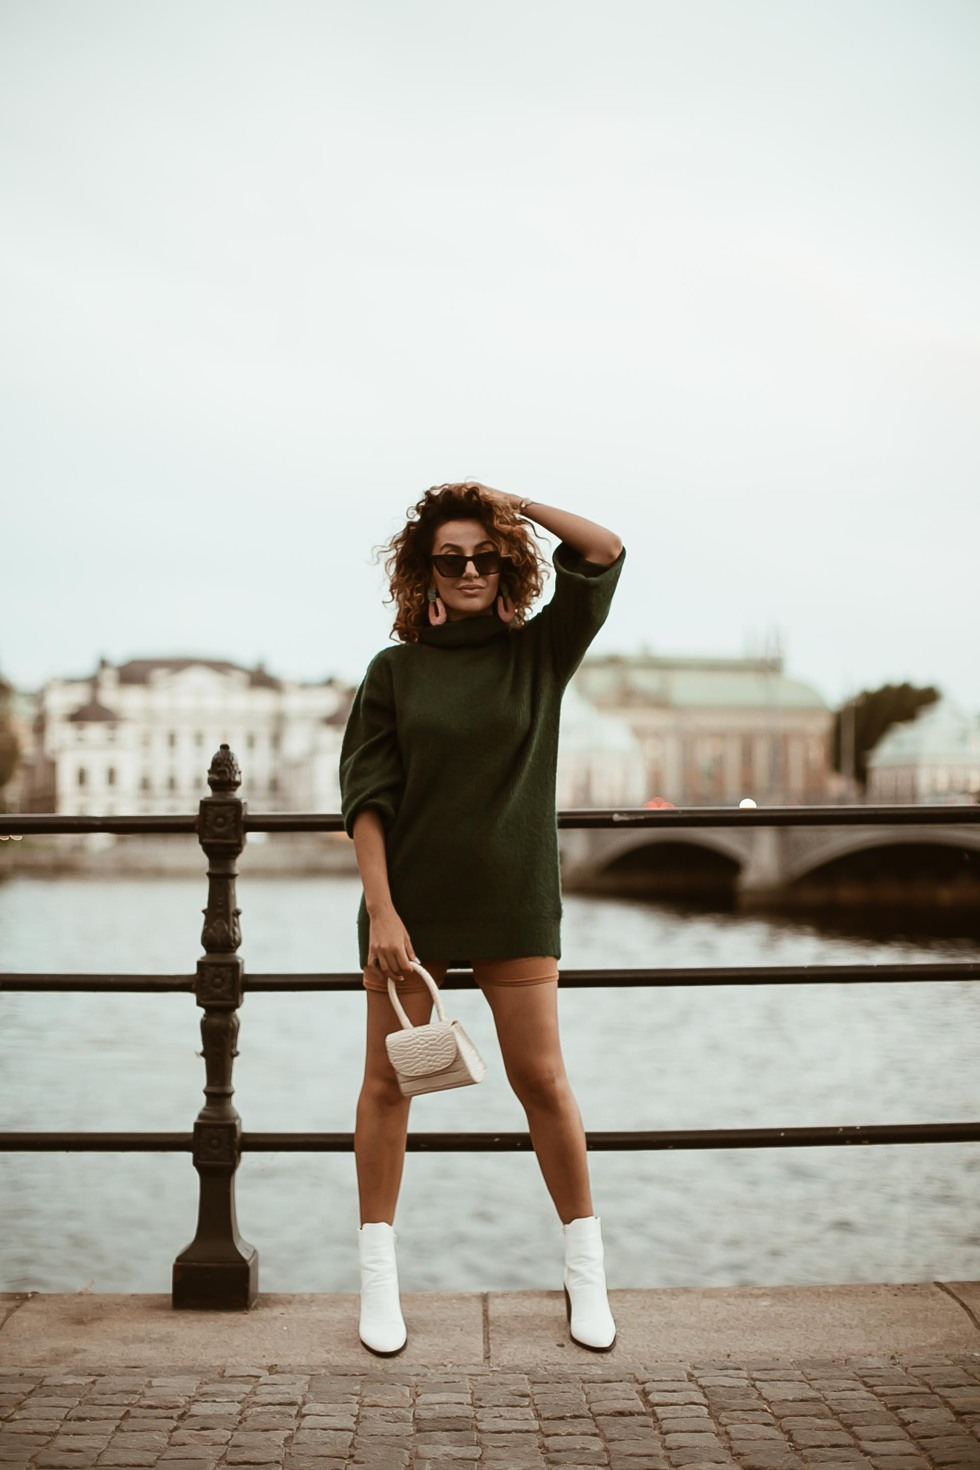 sara-che-indian-summer-turtleneck-knit-bycle-short-bag-snake-print-boots-nelly-curly-natrual-hair-persian-influencer